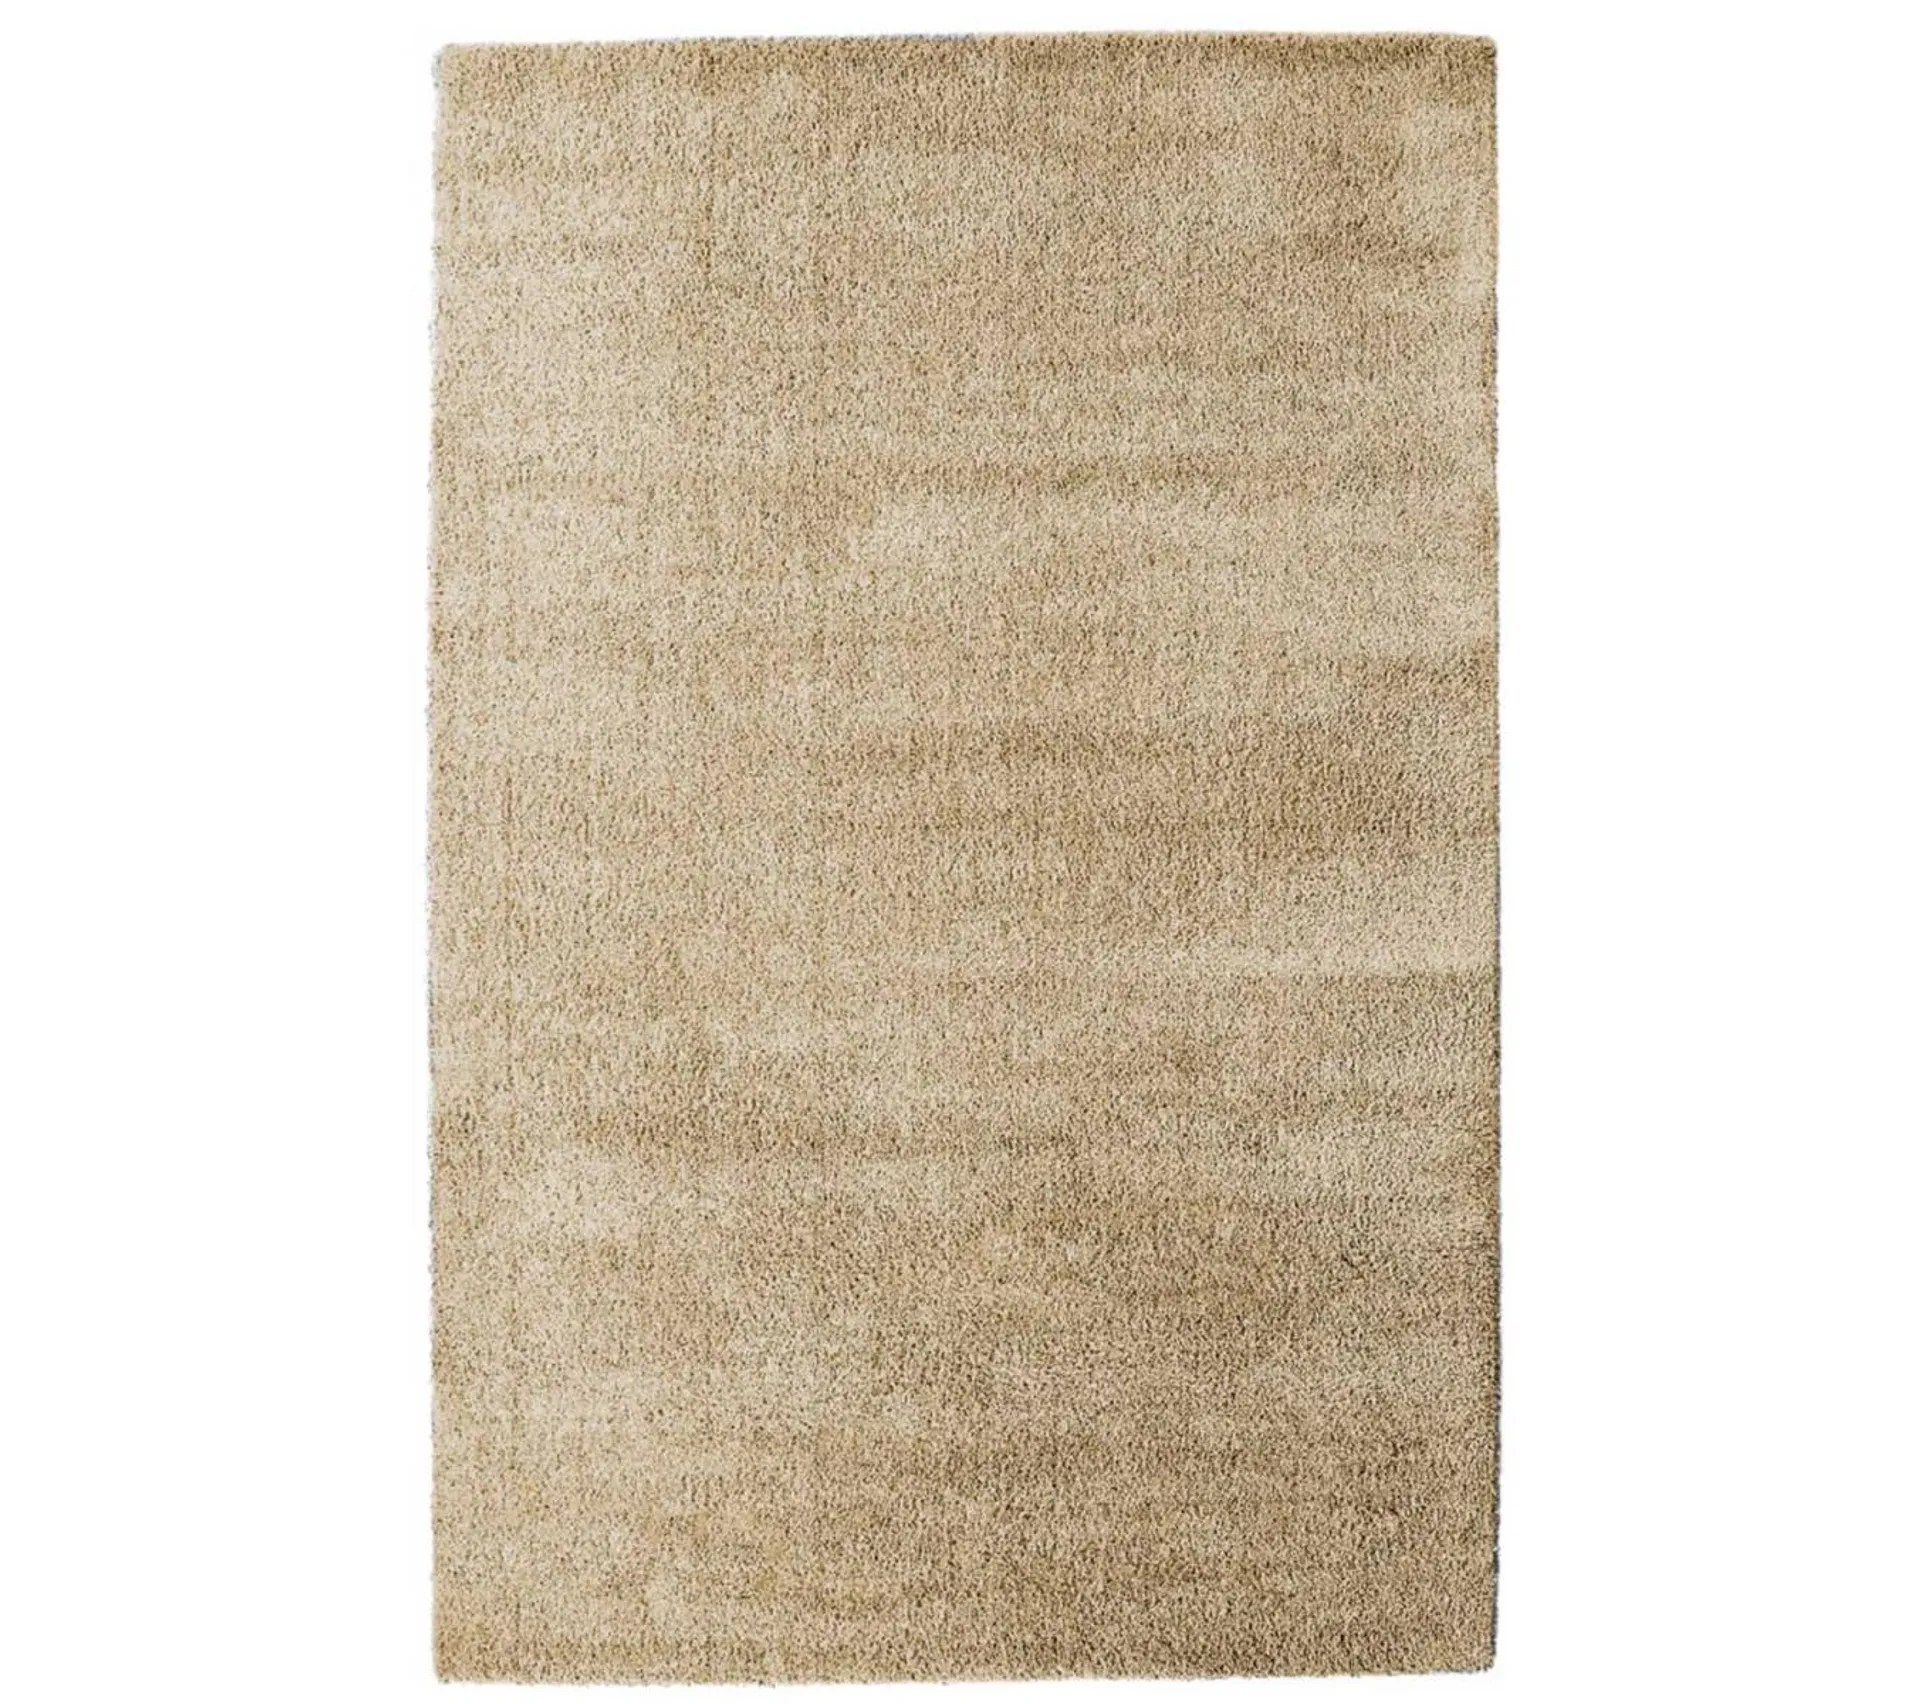 120x170 tapis shaggy poils long rectangulaire silky touch beige